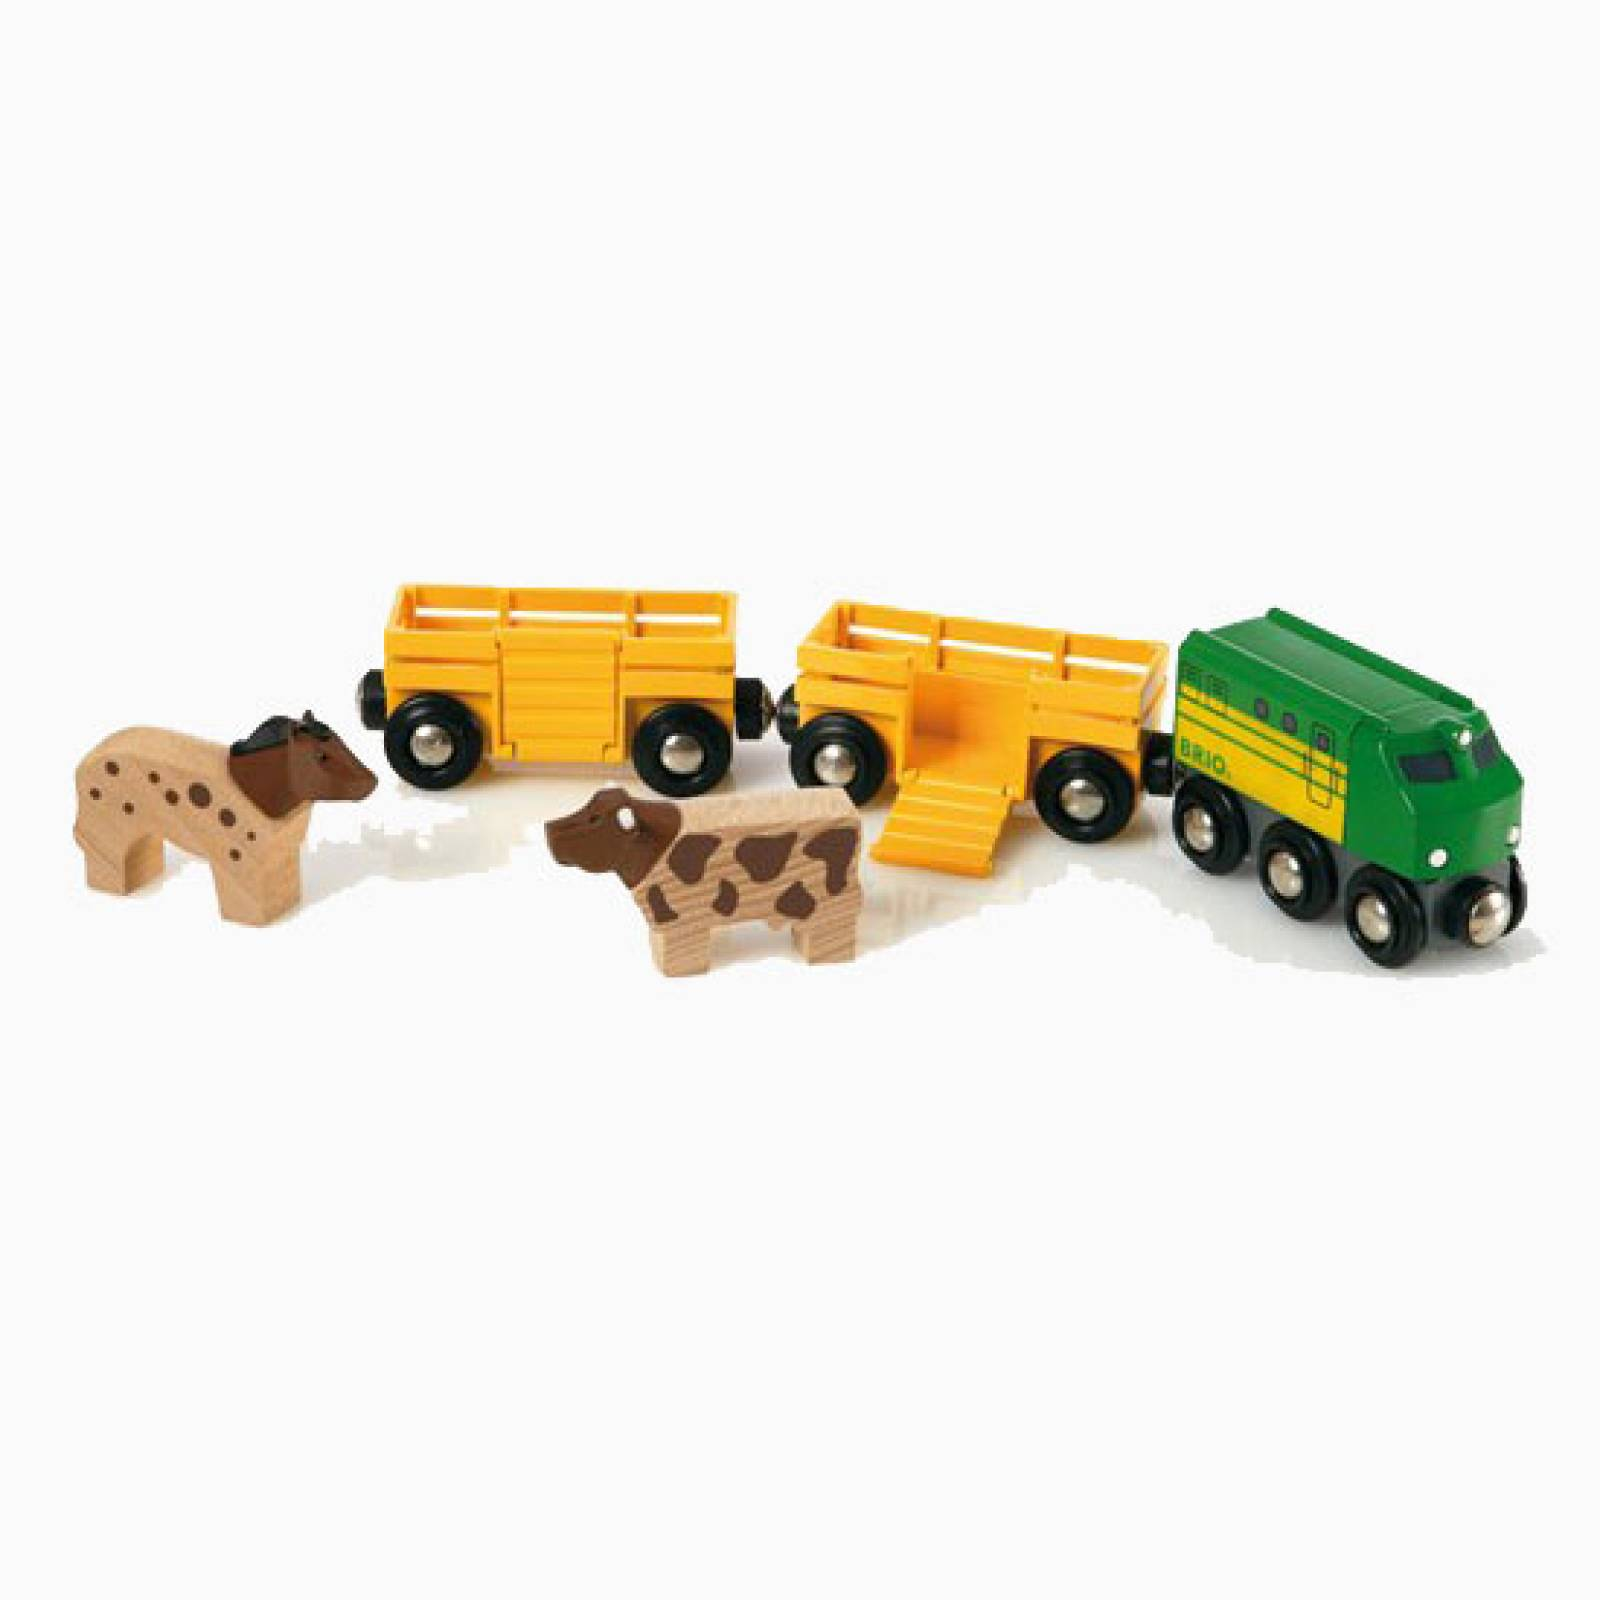 Farm Train BRIO Wooden Railway Age 3+